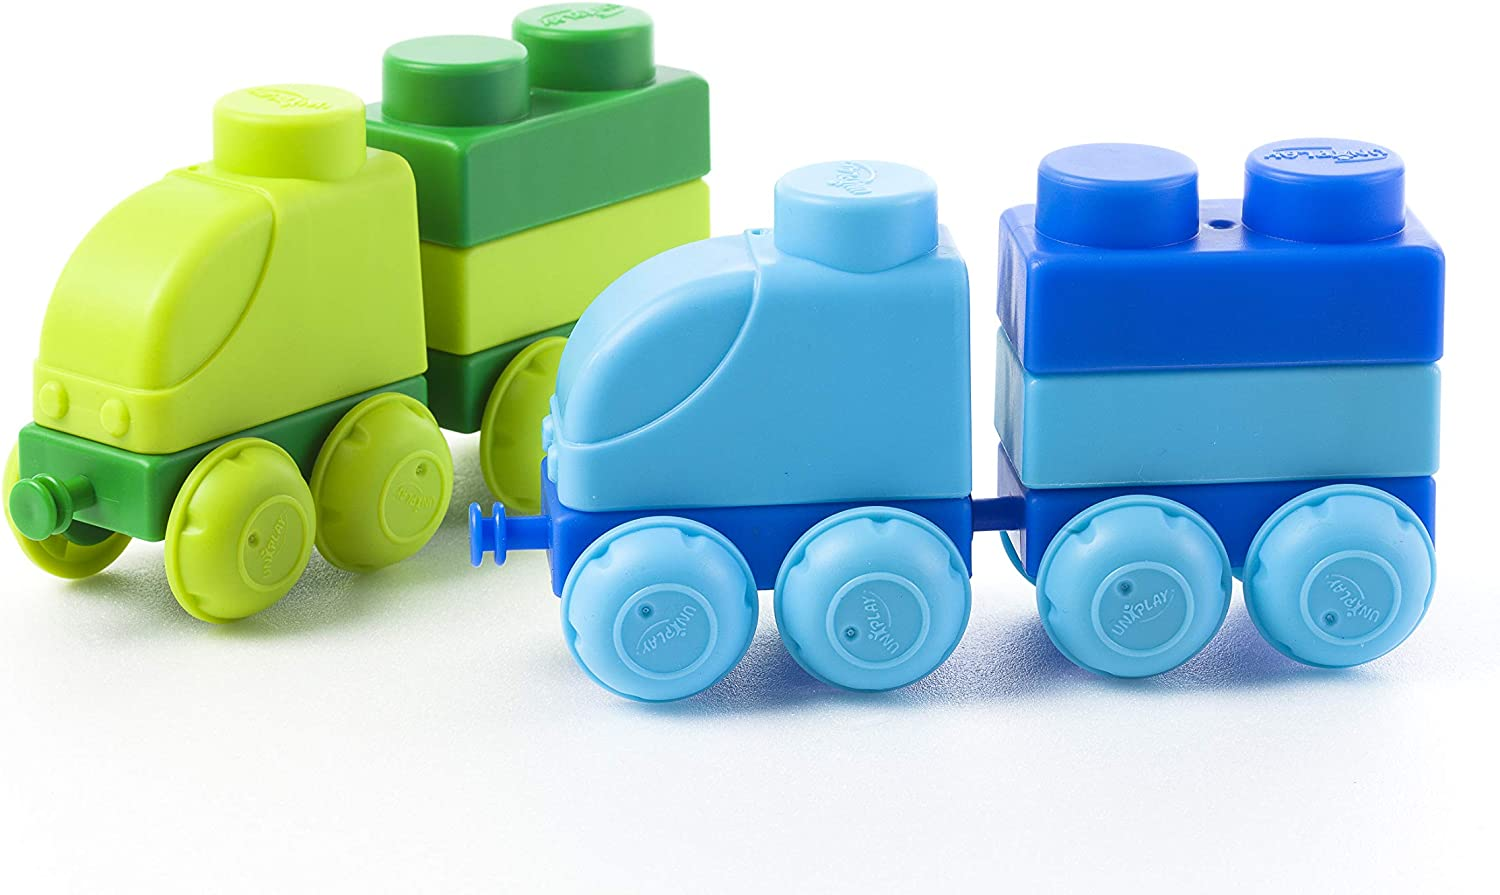 UNiPLAY Traffic Soft Building Blocks Truck Toys for Ages 3 Small Truck Set Toddlers and Kids Learn to Build and Move